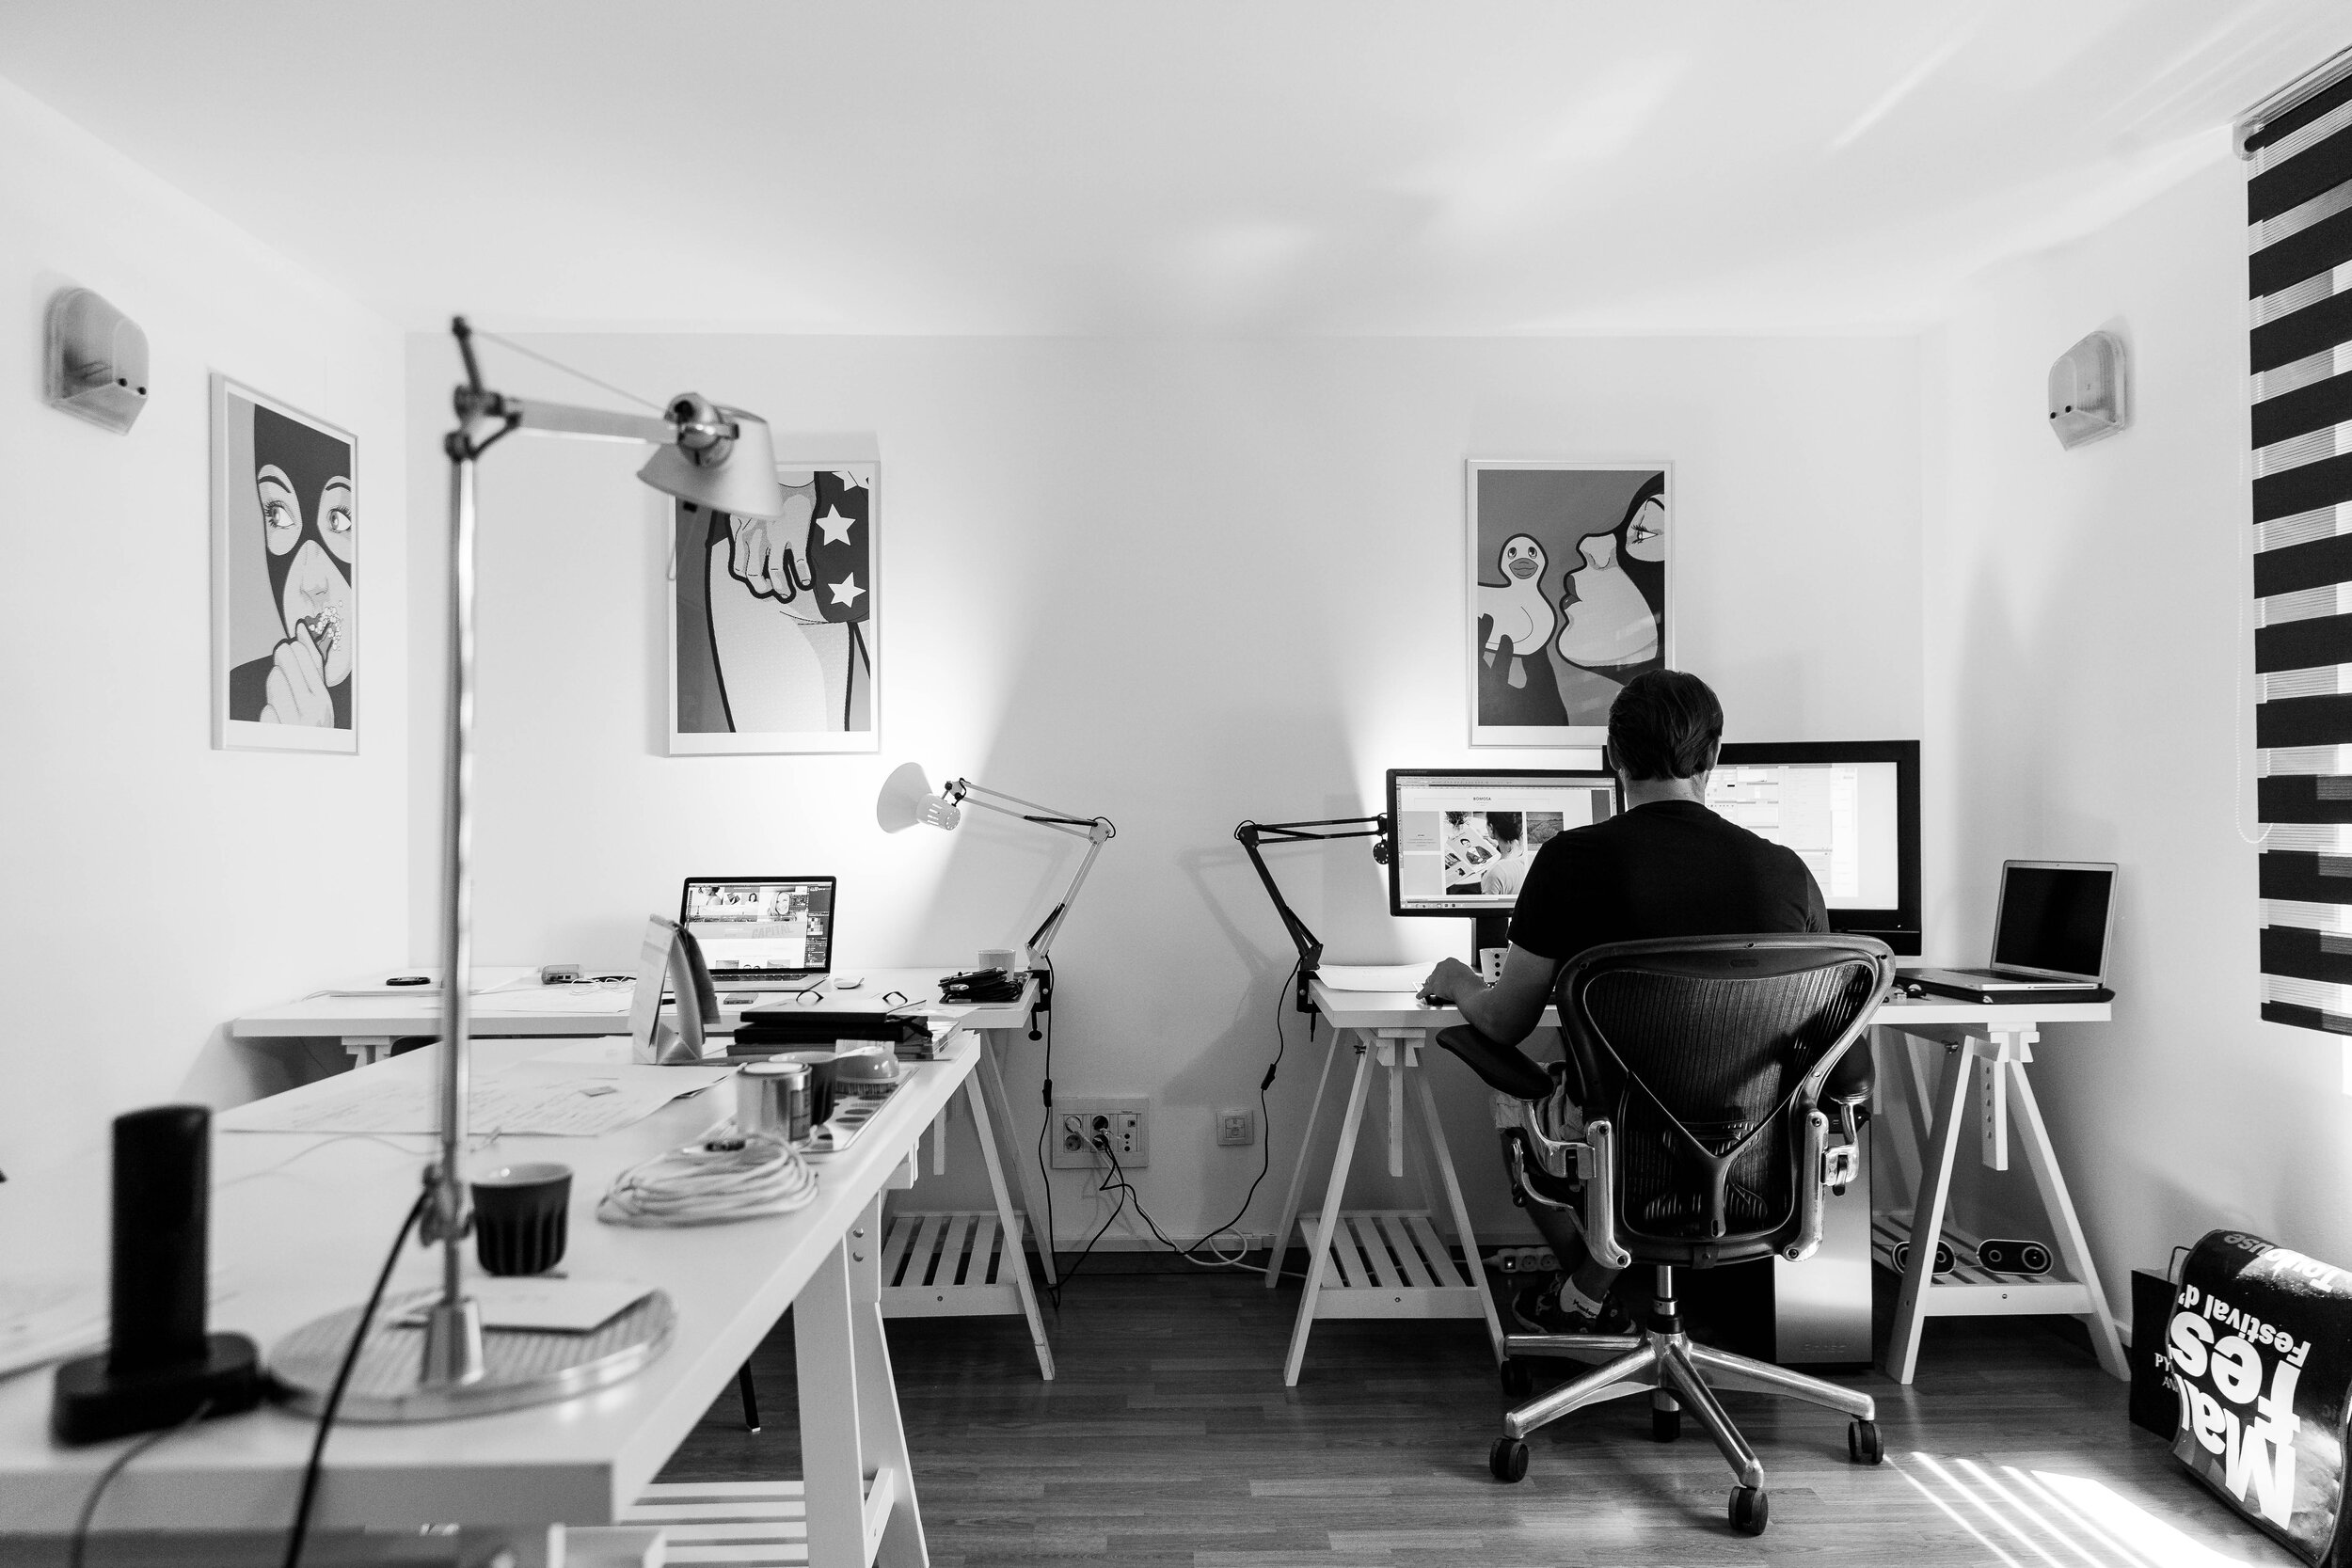 Canva - Grayscale Photography of a Man Sitting Infront of a Computer.jpg